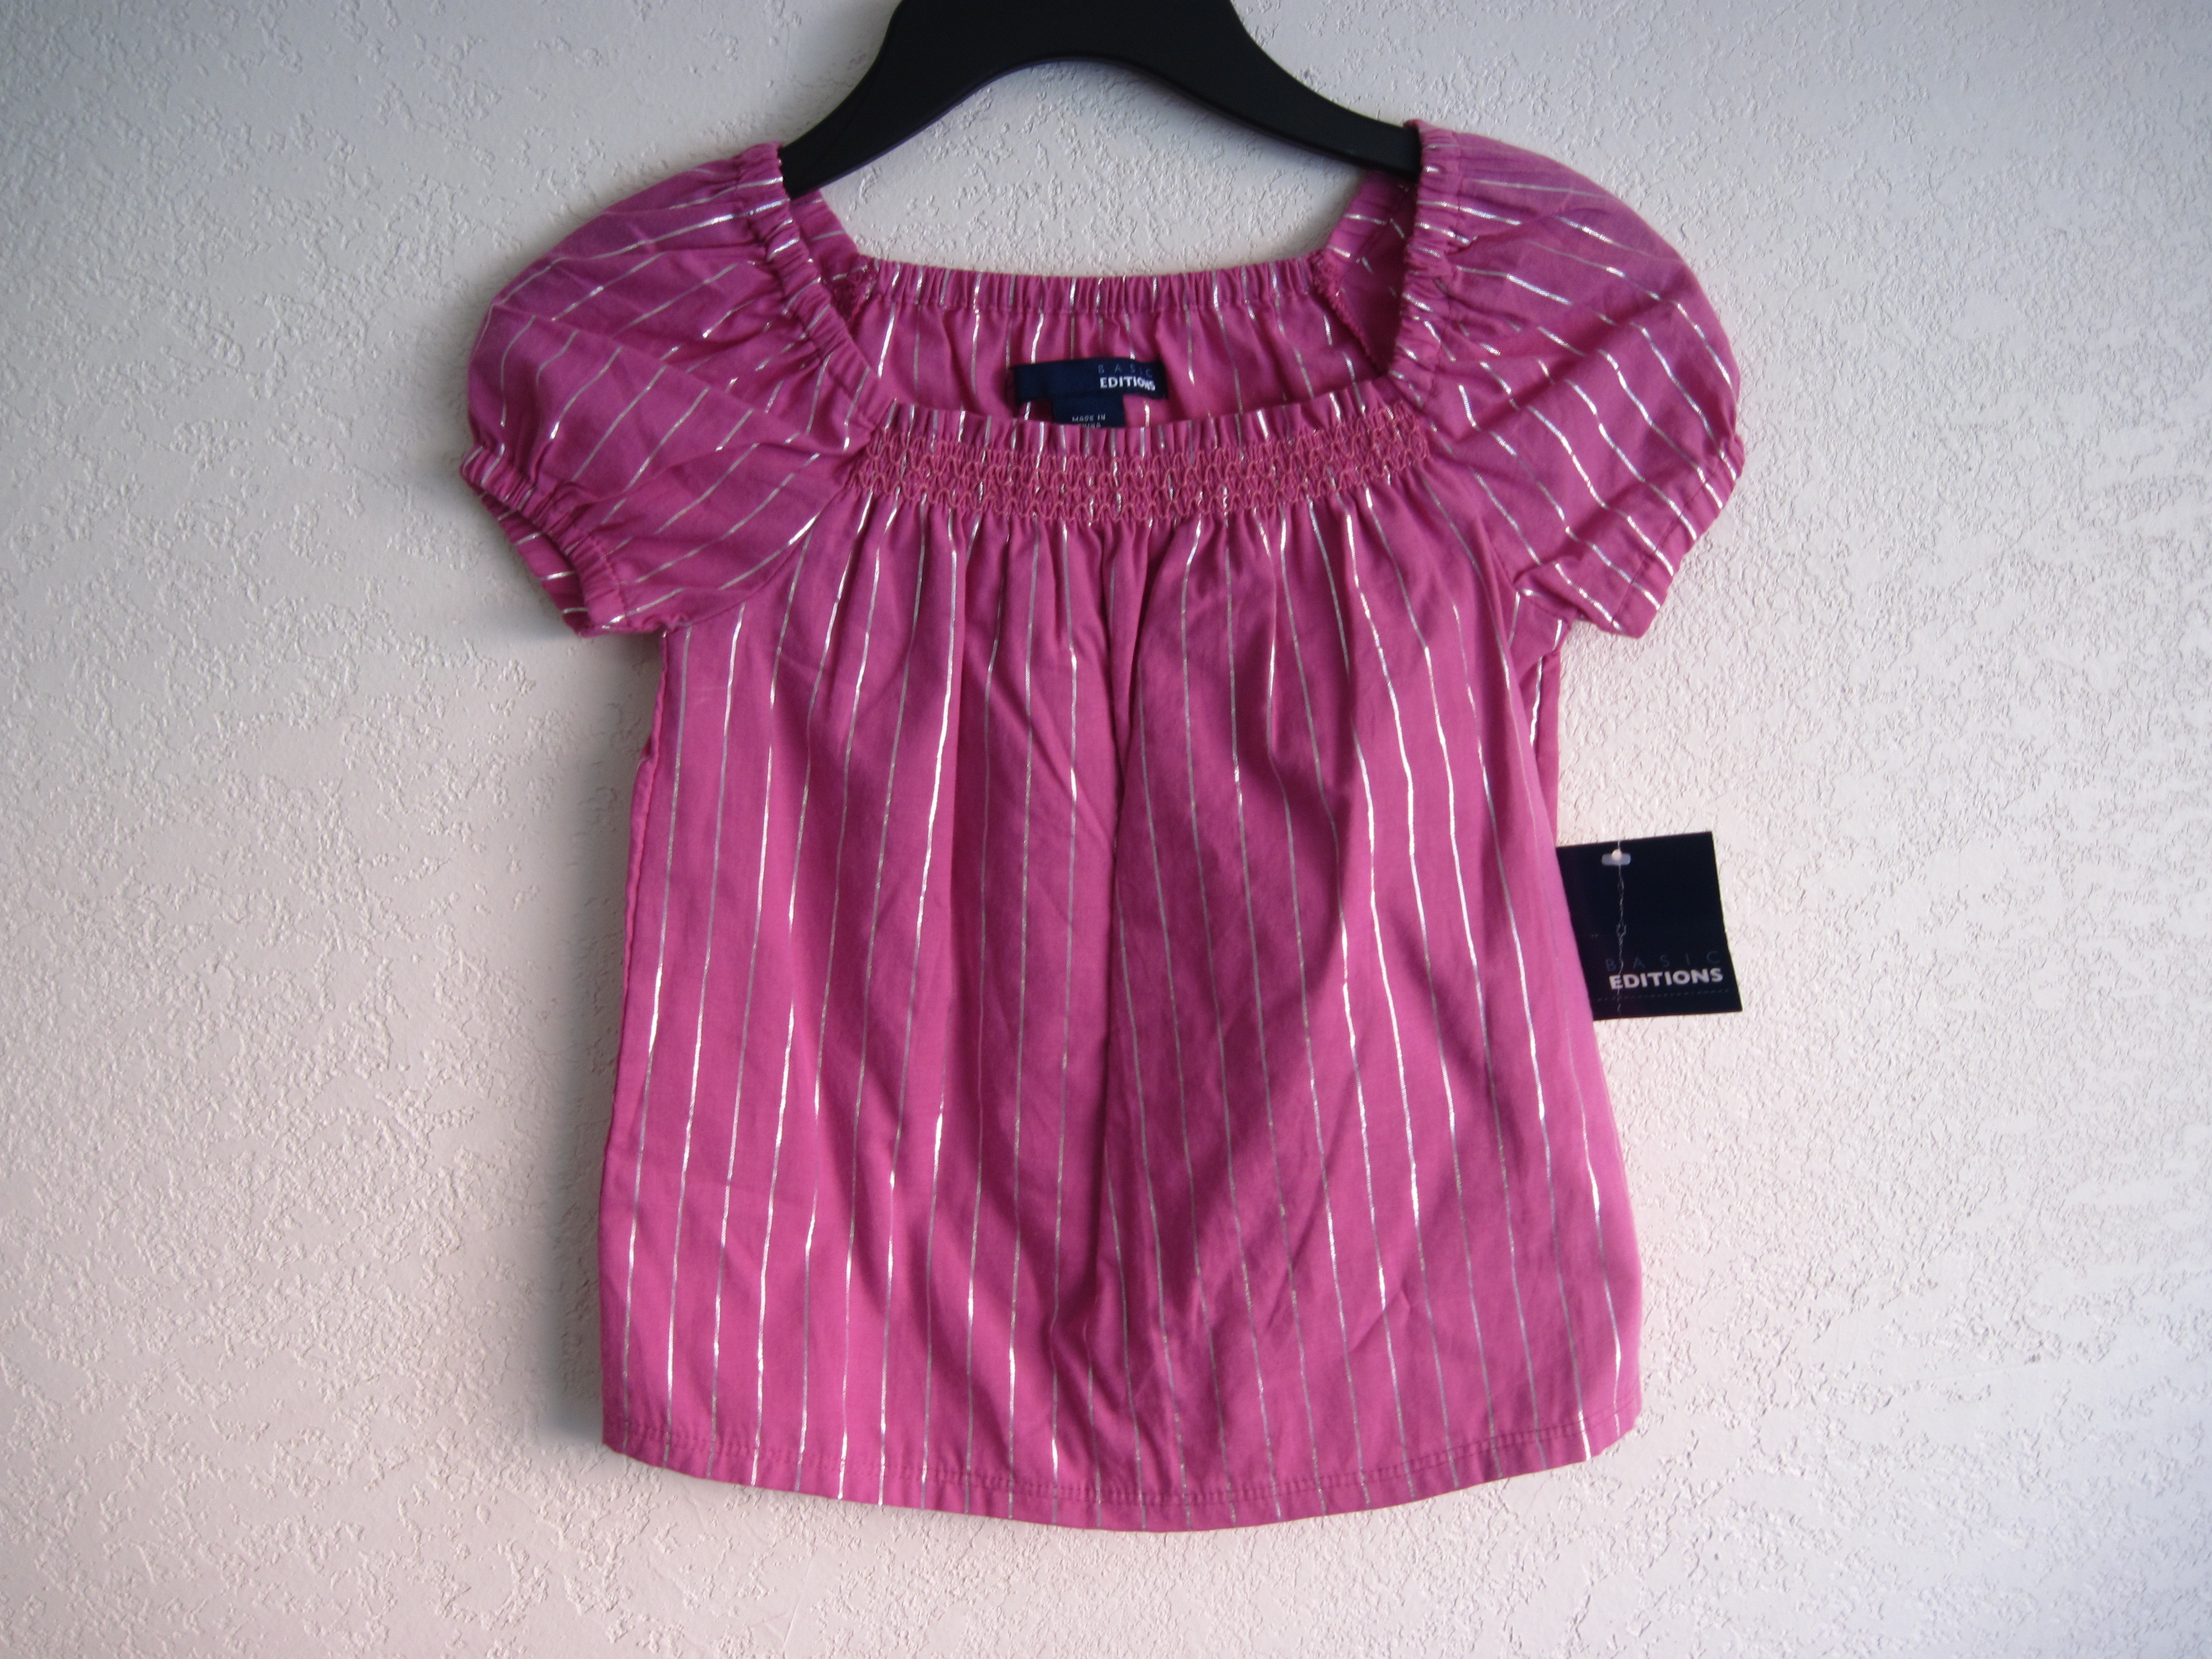 Basic Editions Sz XS 4/5 Casual Top (pink,silver stripes)